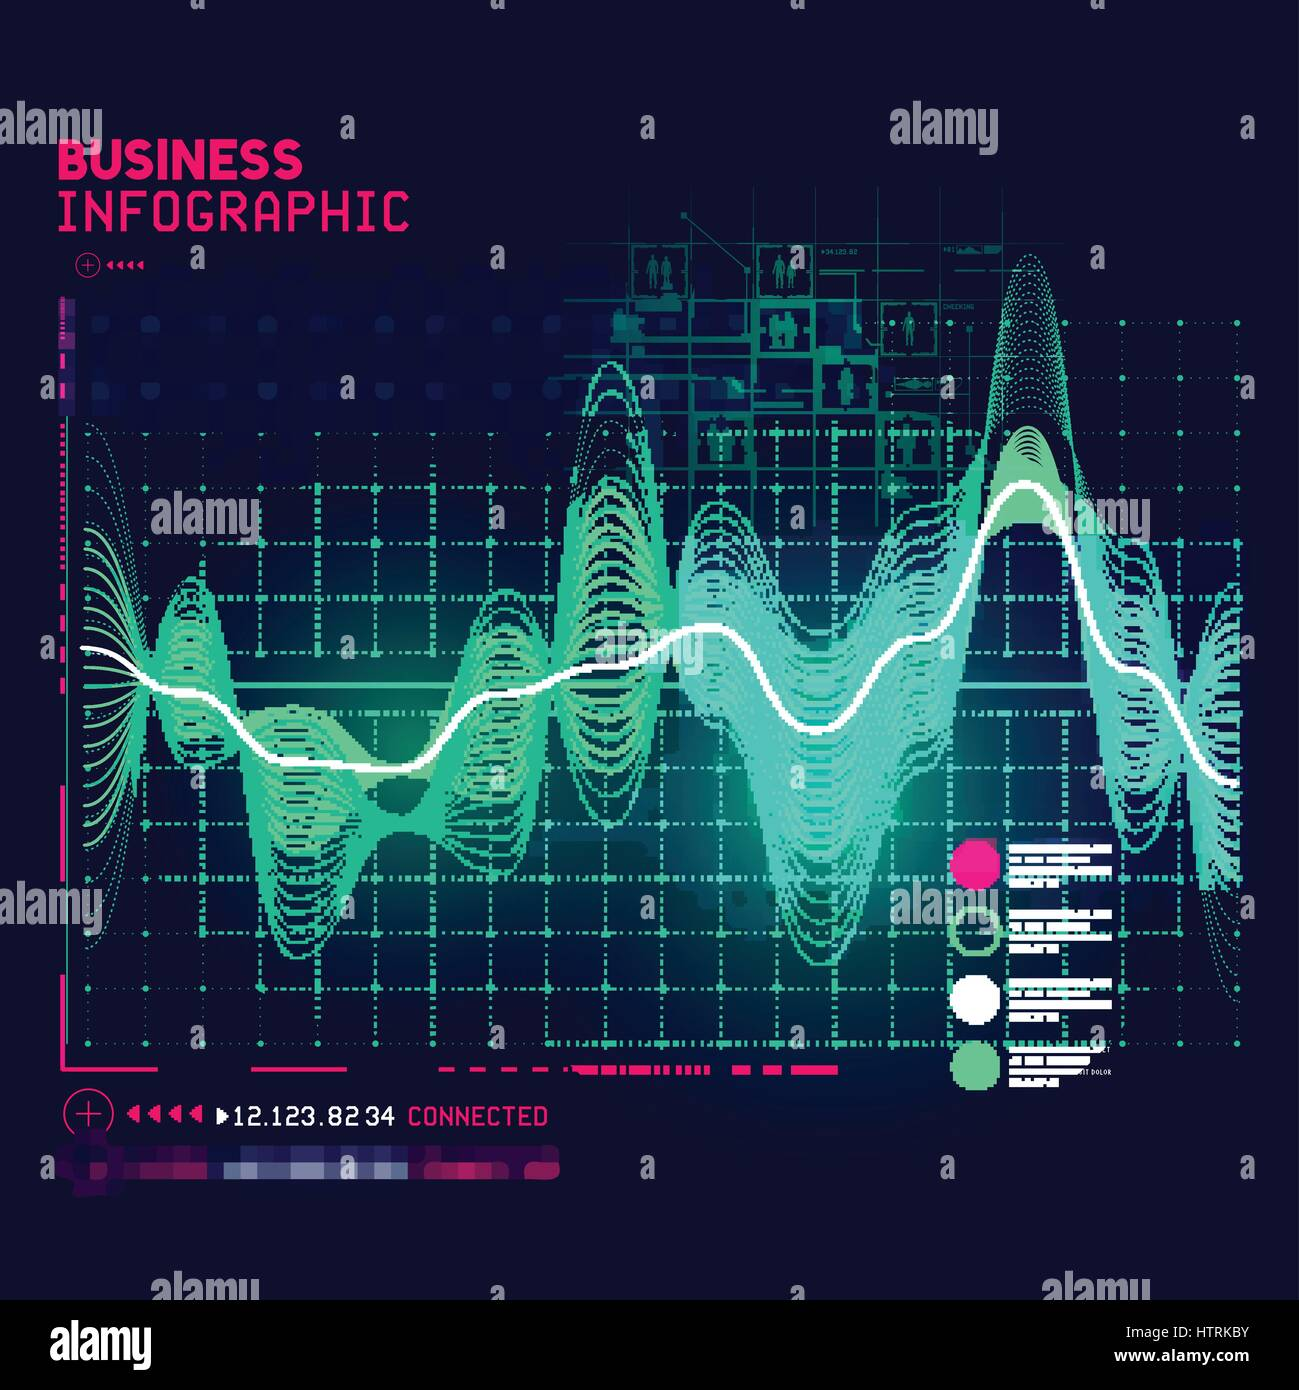 A detailed and technical business graph infographic element. Vector illustration - Stock Image